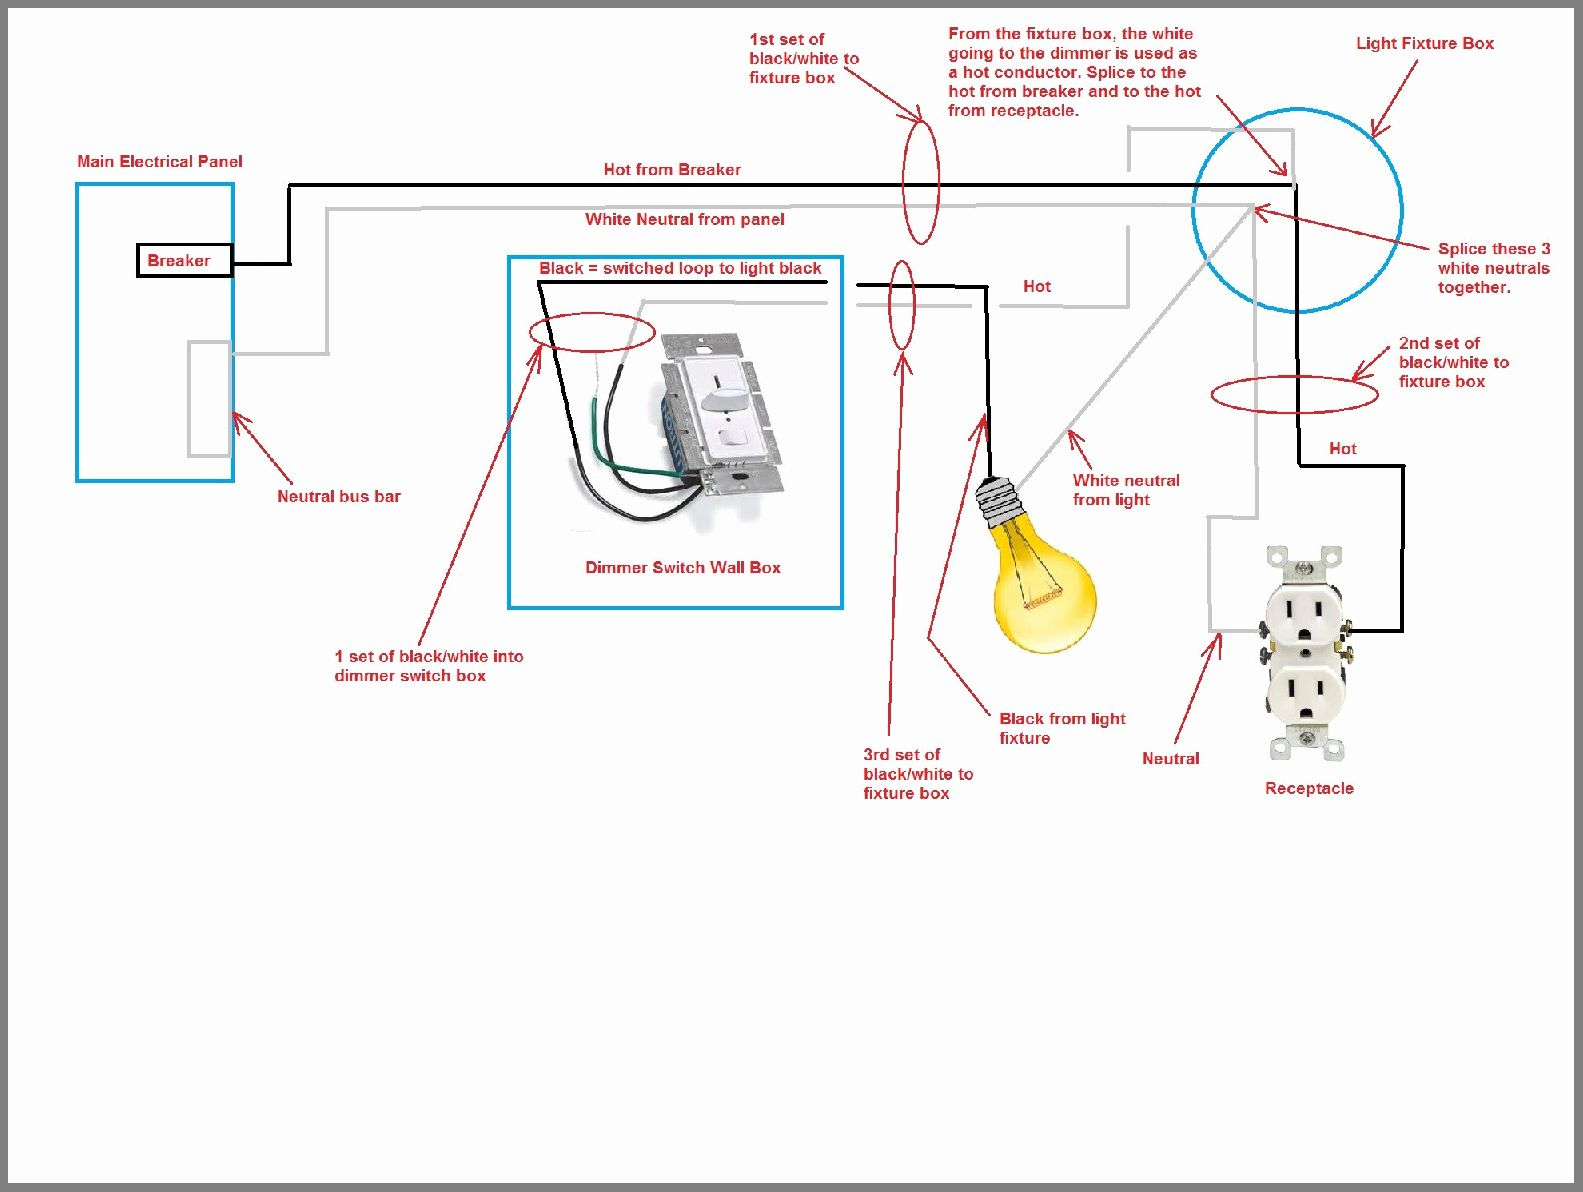 Light Switch Loop Wiring Diagram from 2020cadillac.com